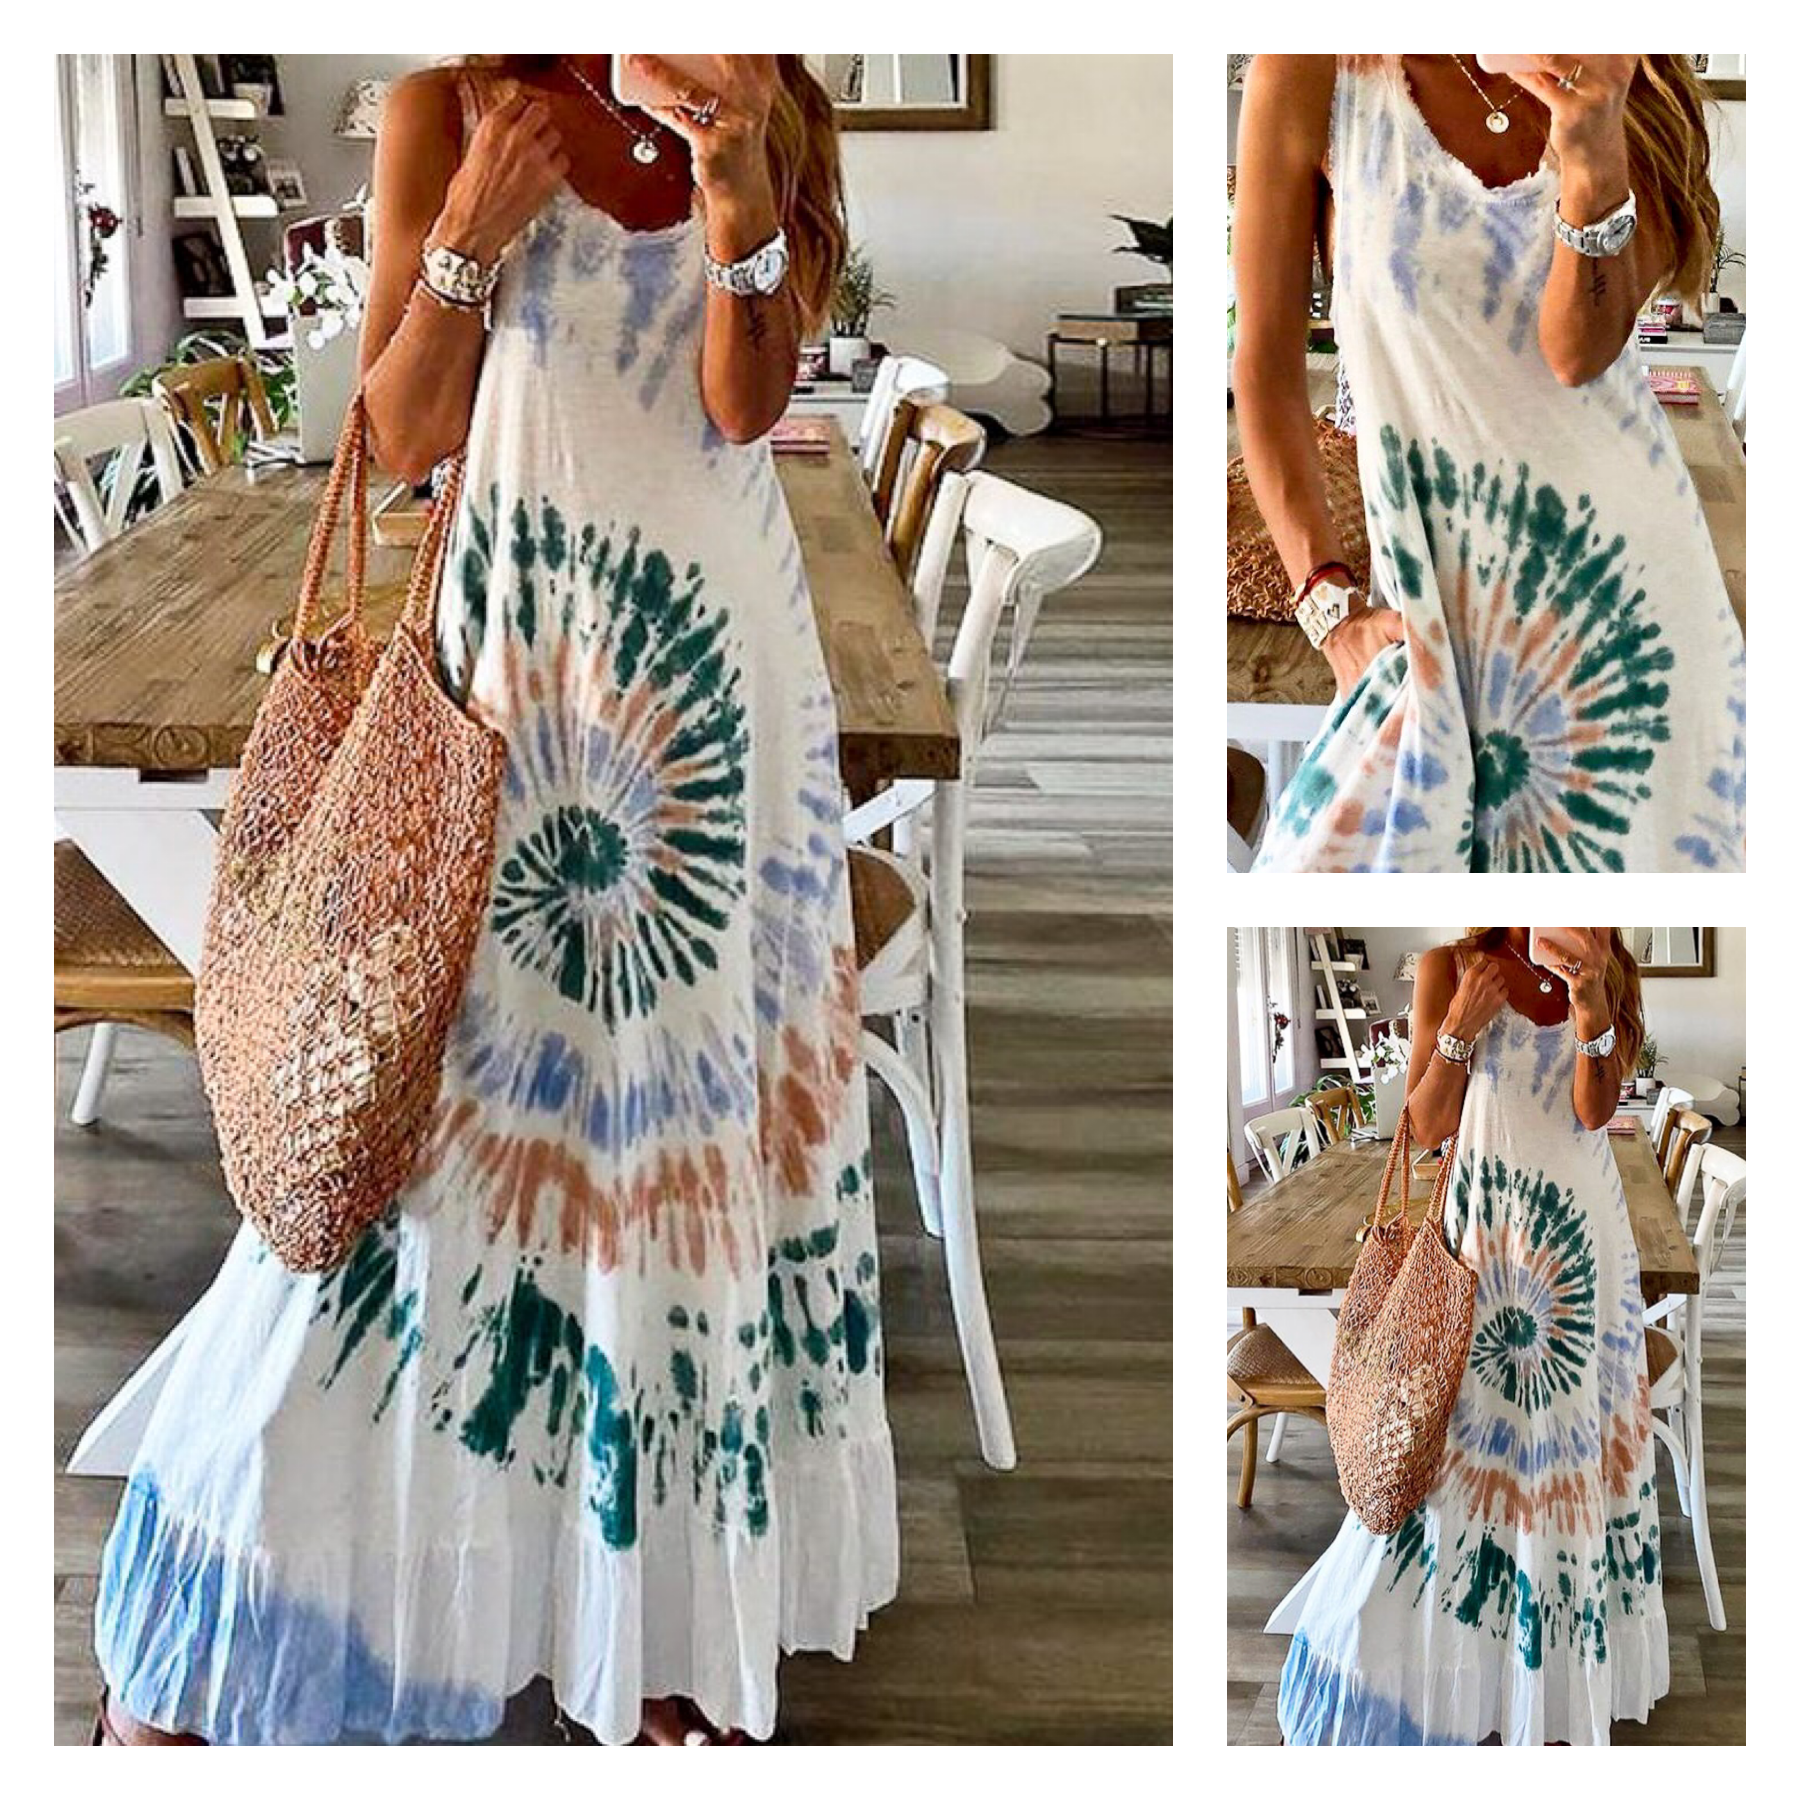 Distressed Tie Dye Maxi Dress